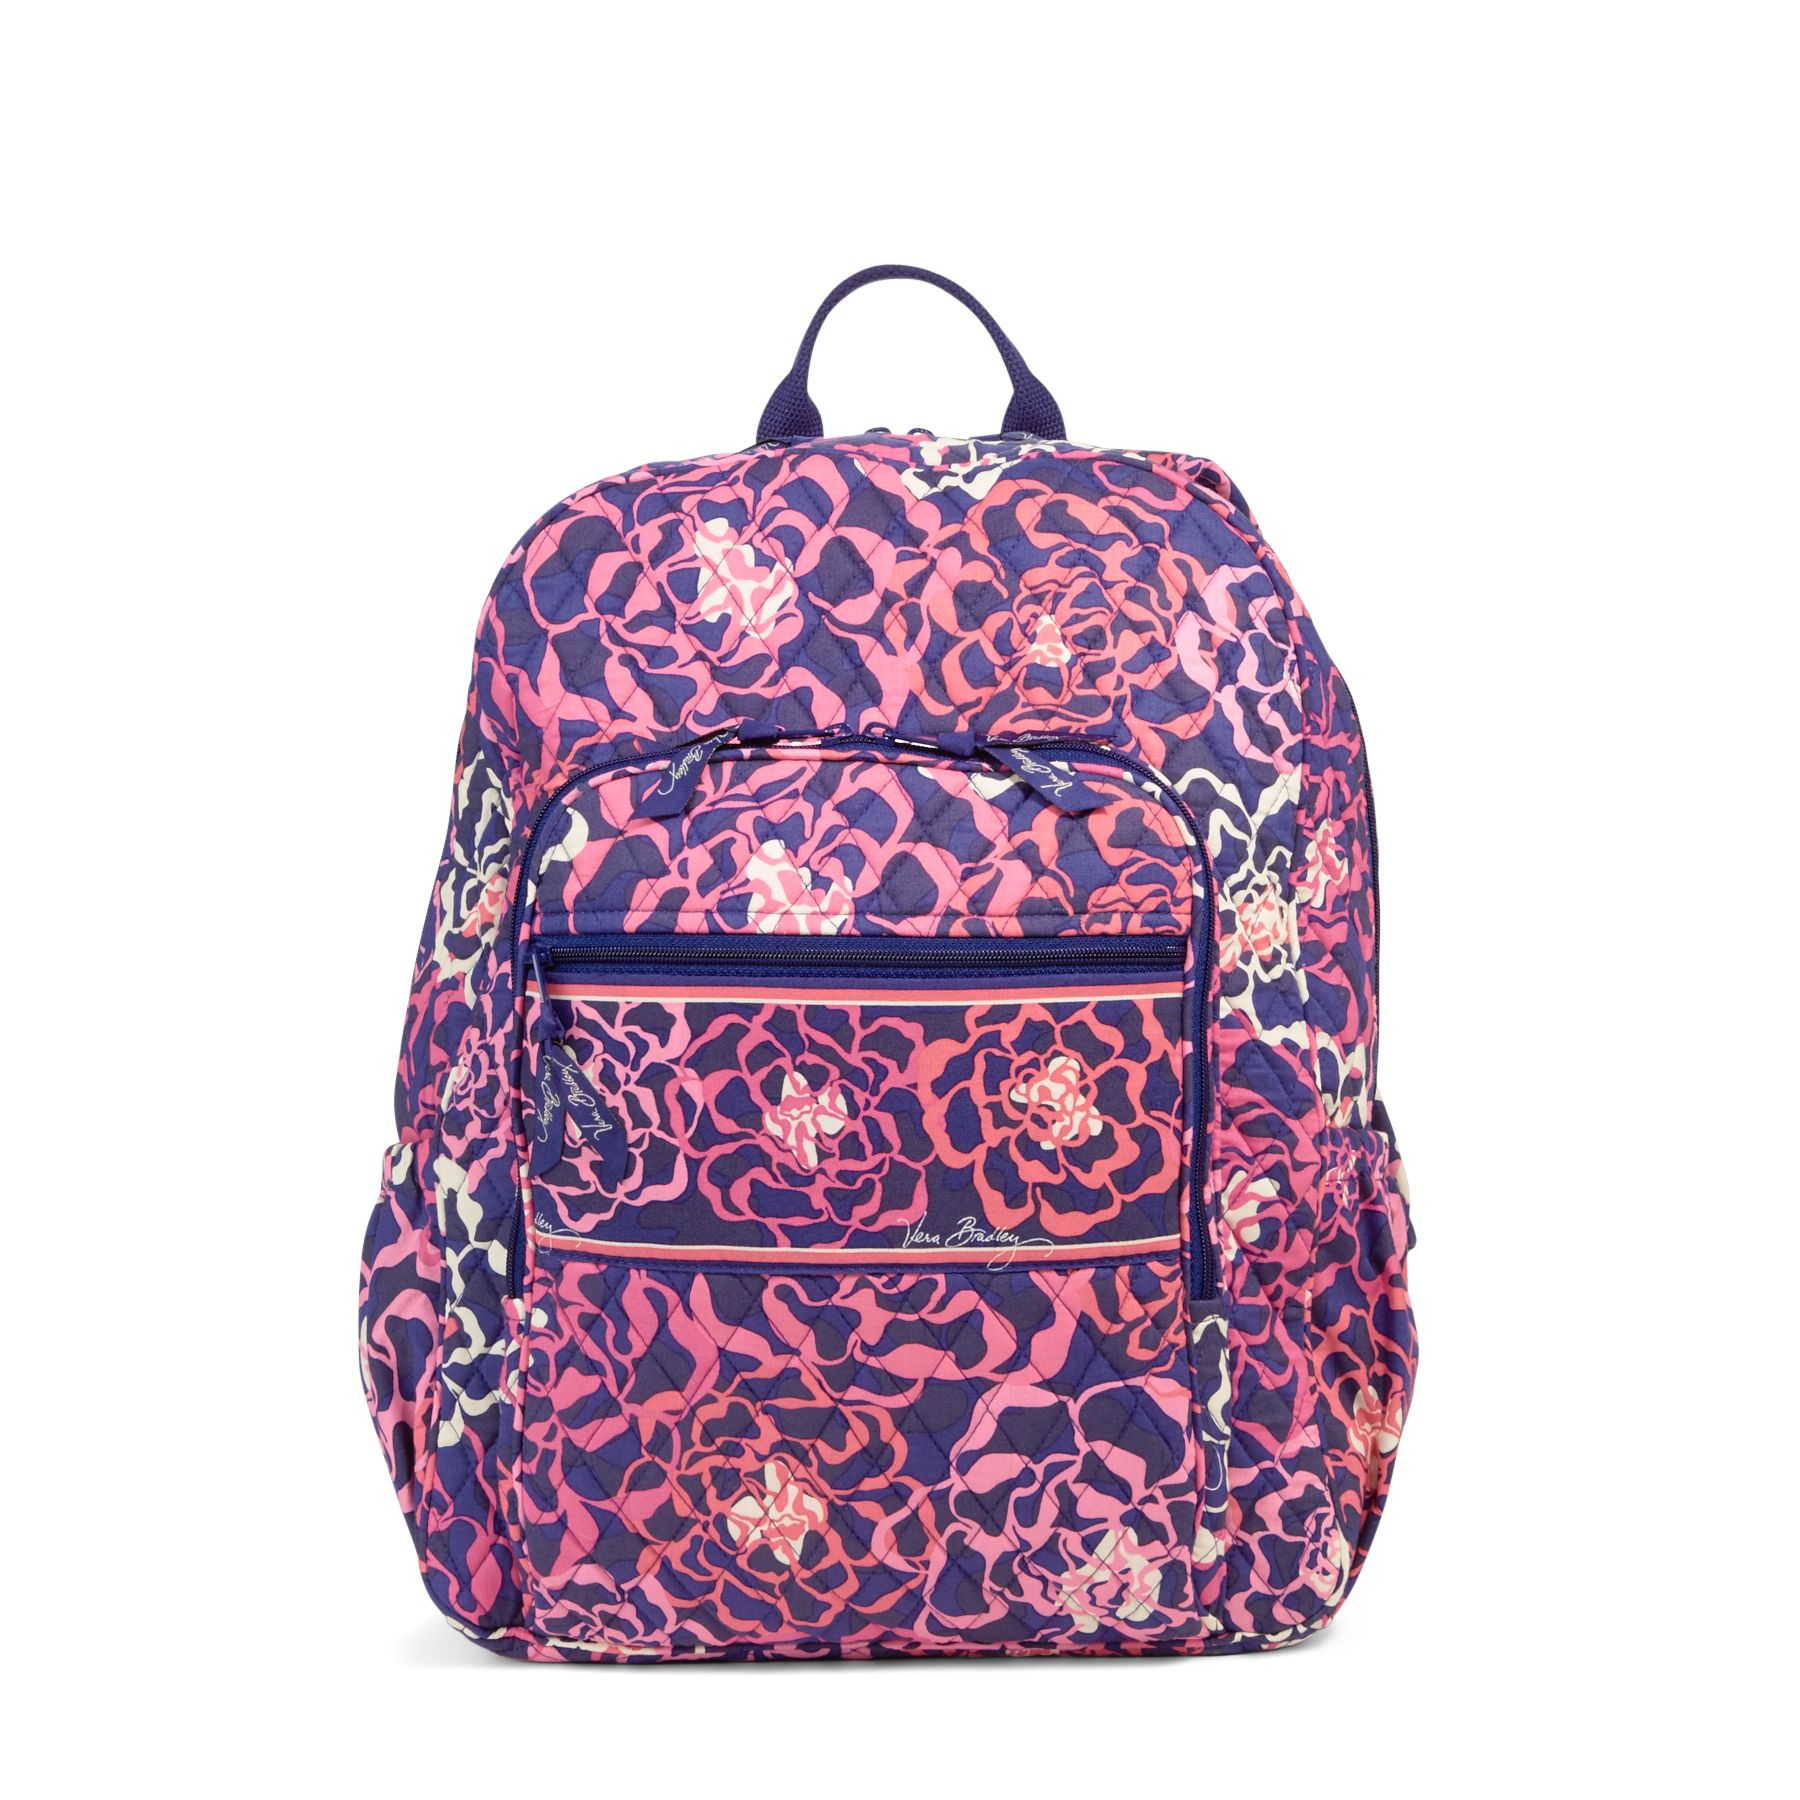 The design is great and it has plenty of space for her Trapper Keeper, Vera Bradley Lunch Bag, and other items.